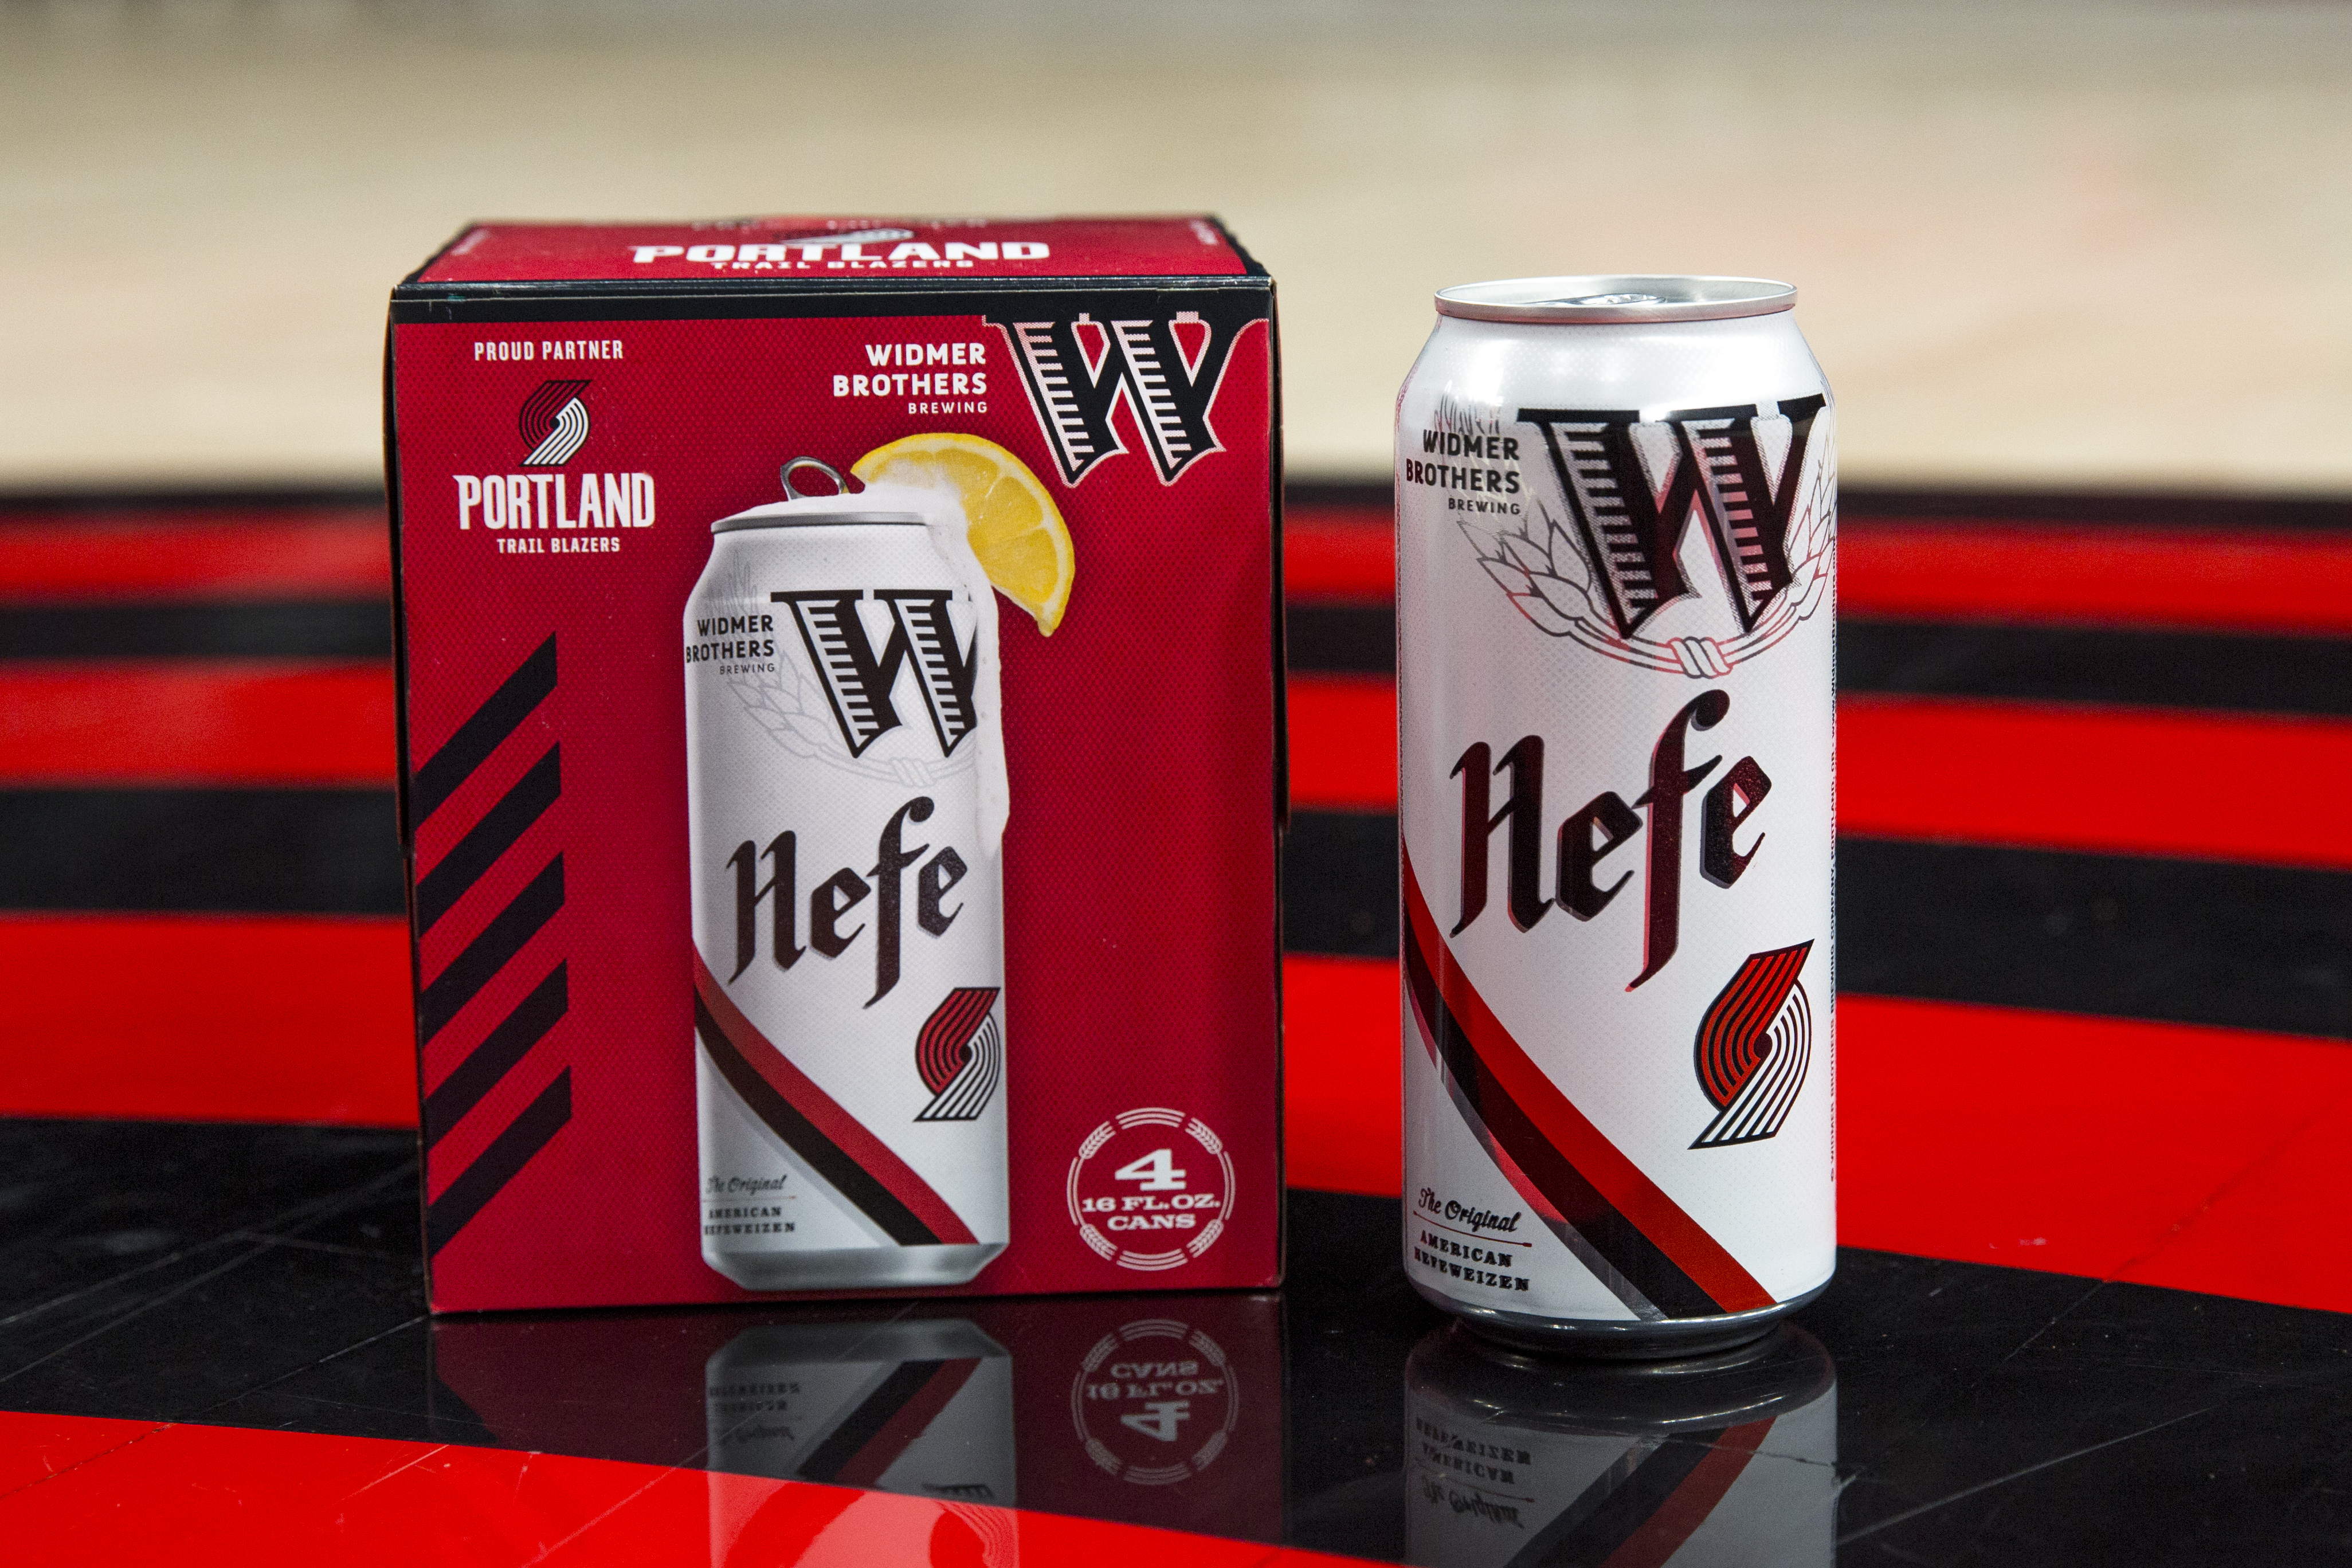 Widmer Brothers And Portland Trail Blazers Release Co-branded Hefe Cans photo